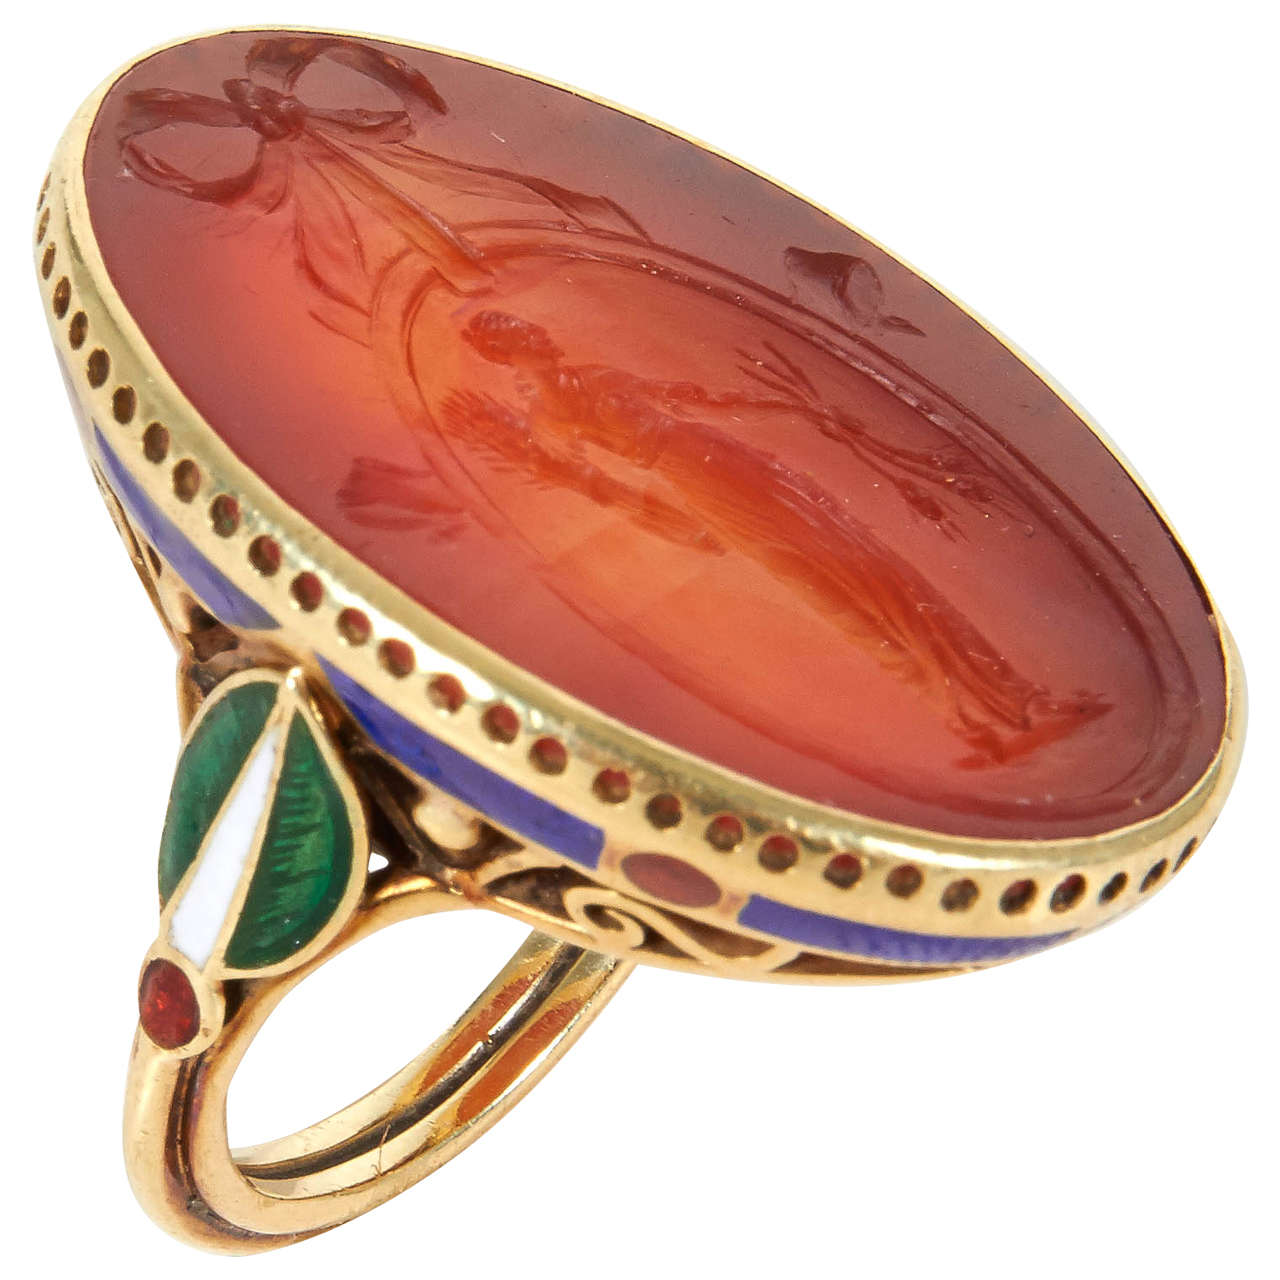 Carnelian gold and enamel intaglio ring by marie for The jewelry and metalwork of marie zimmermann